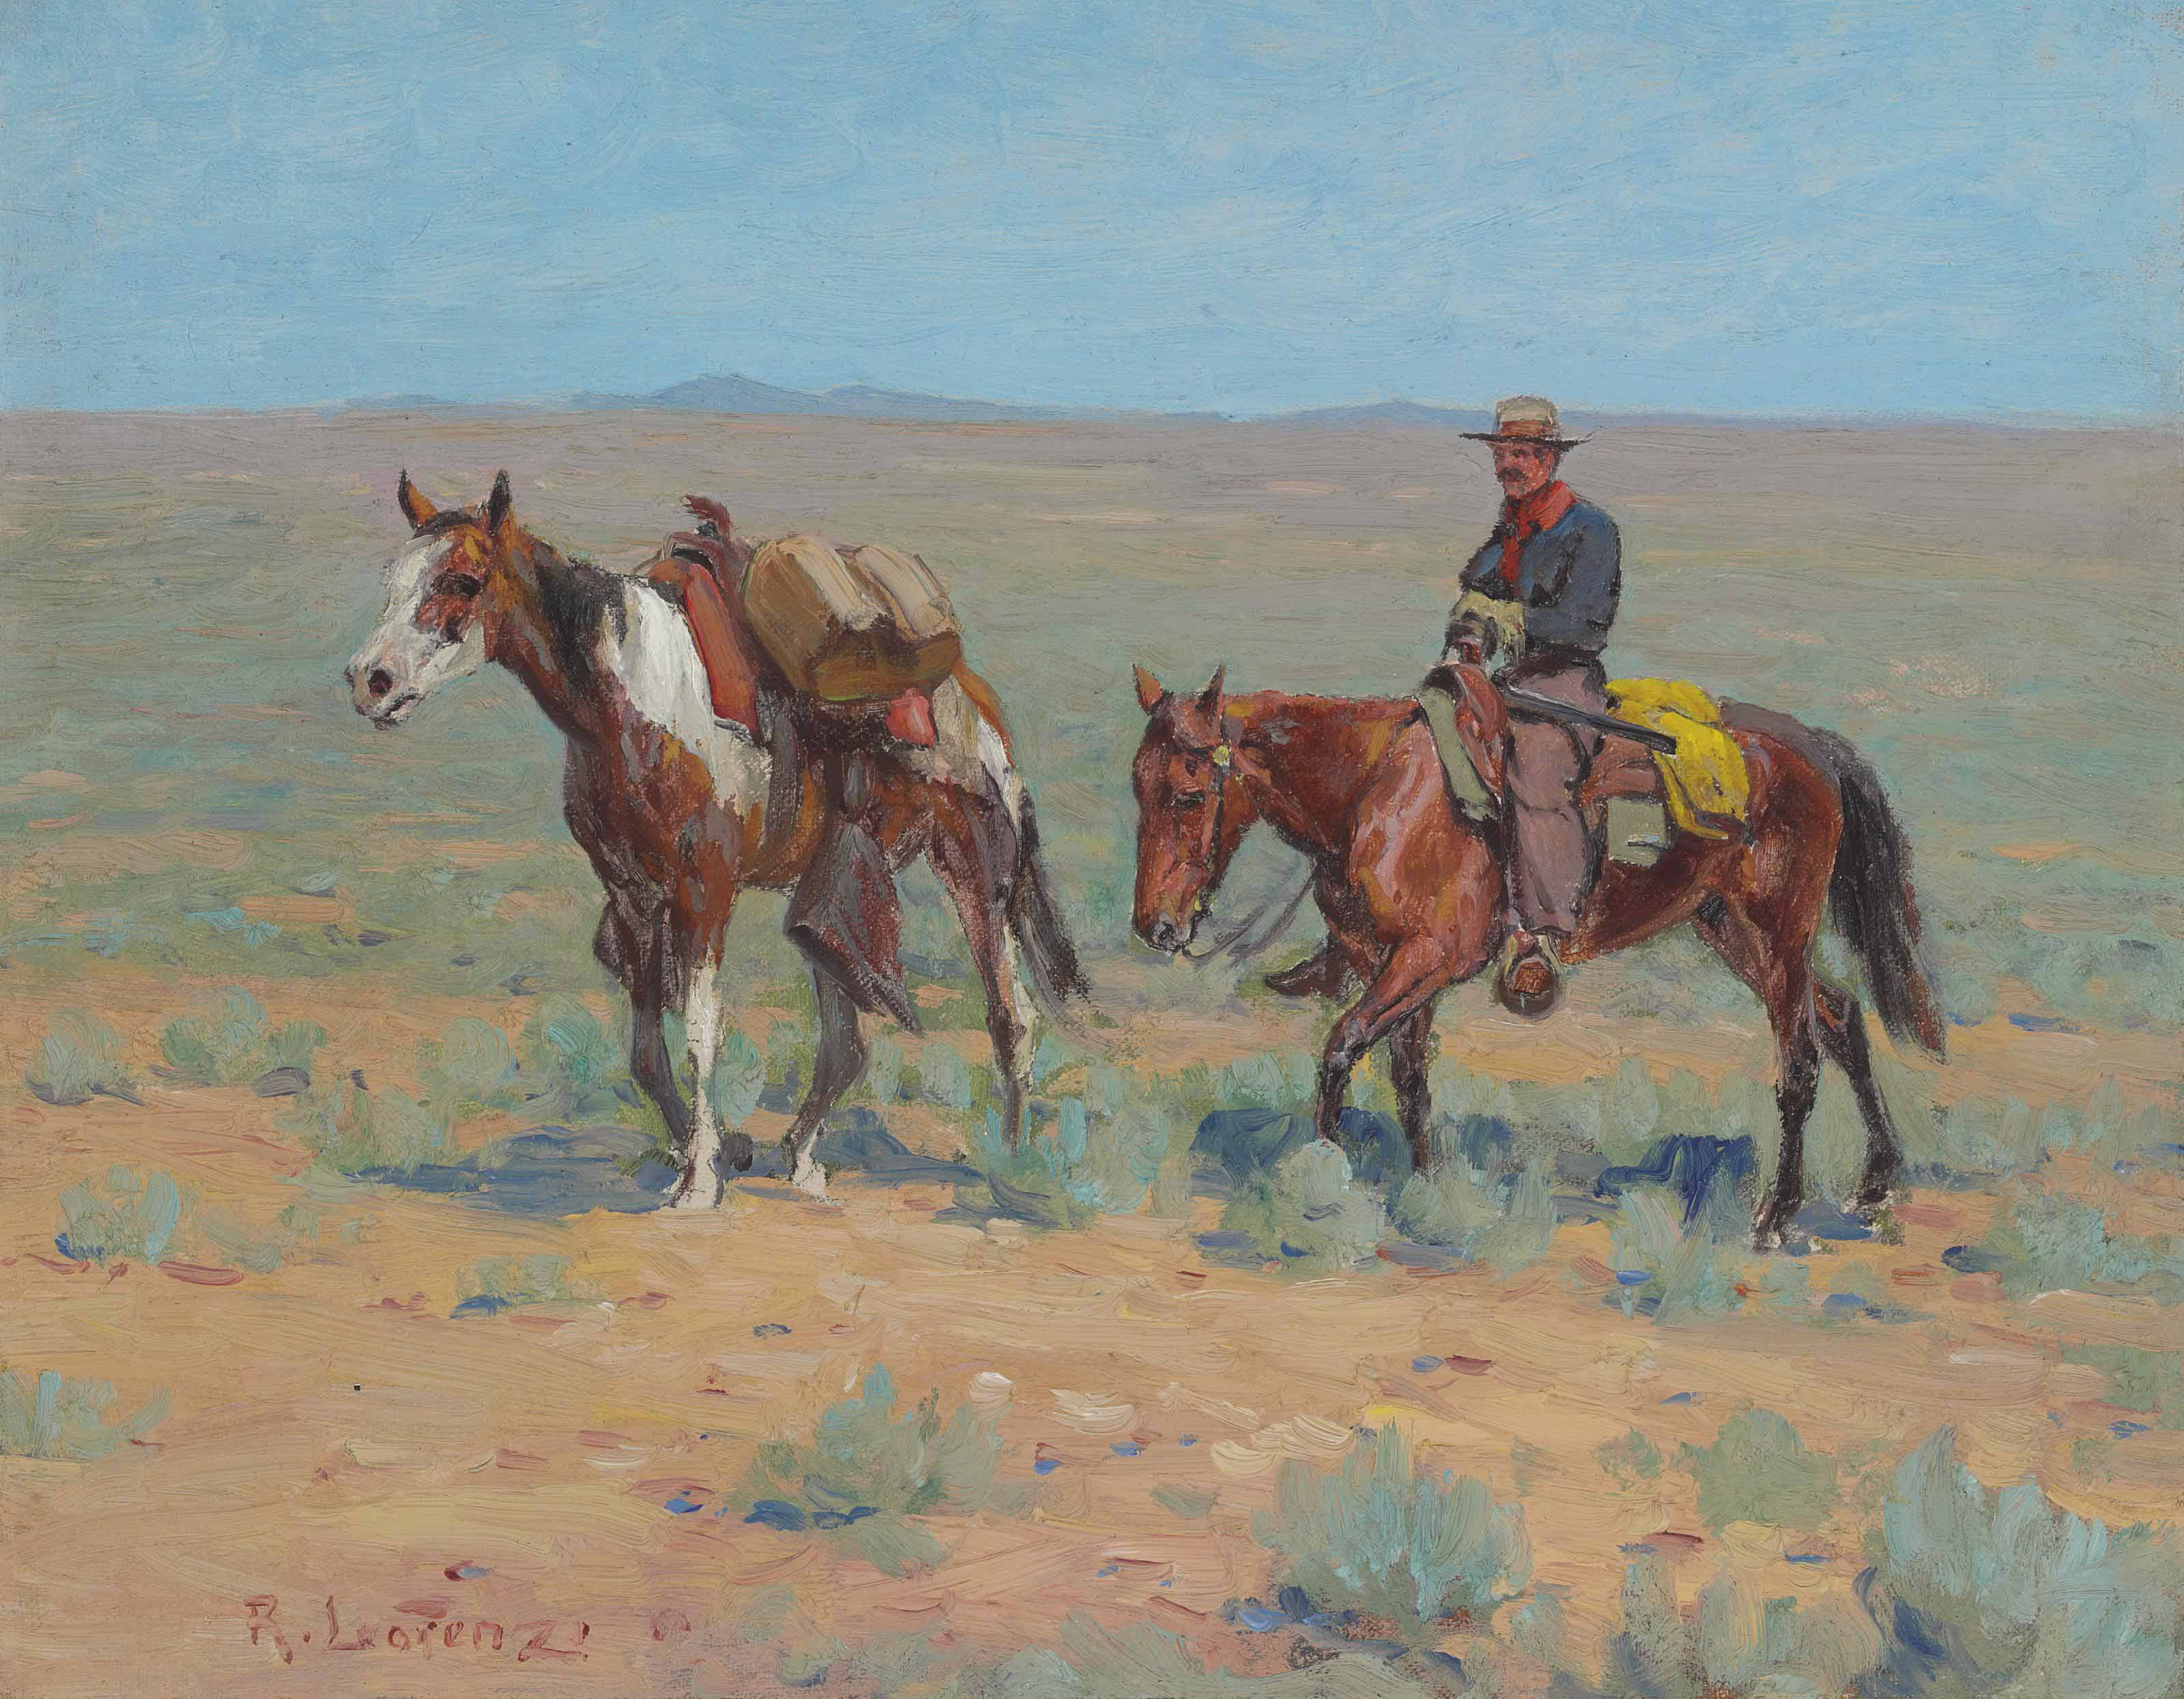 Mounted Cowboy and Pack Horse